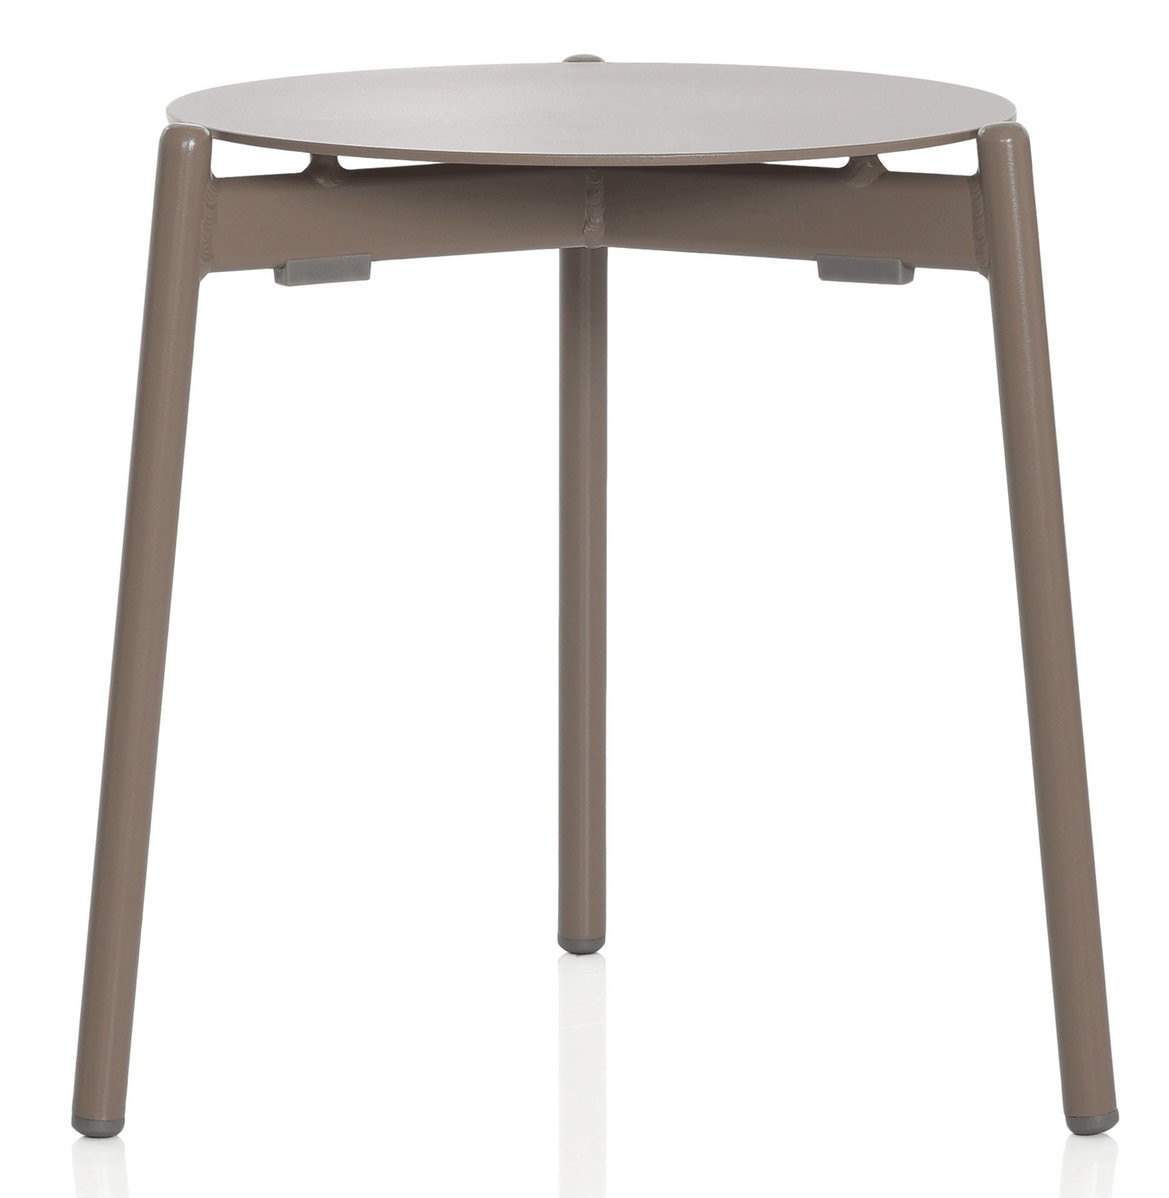 modern outdoor accent and end tables cantoni tropez coffee table small wooden dining chairs living room coastal furnishings asus maroc black bar bronze bedside nate berkus glass